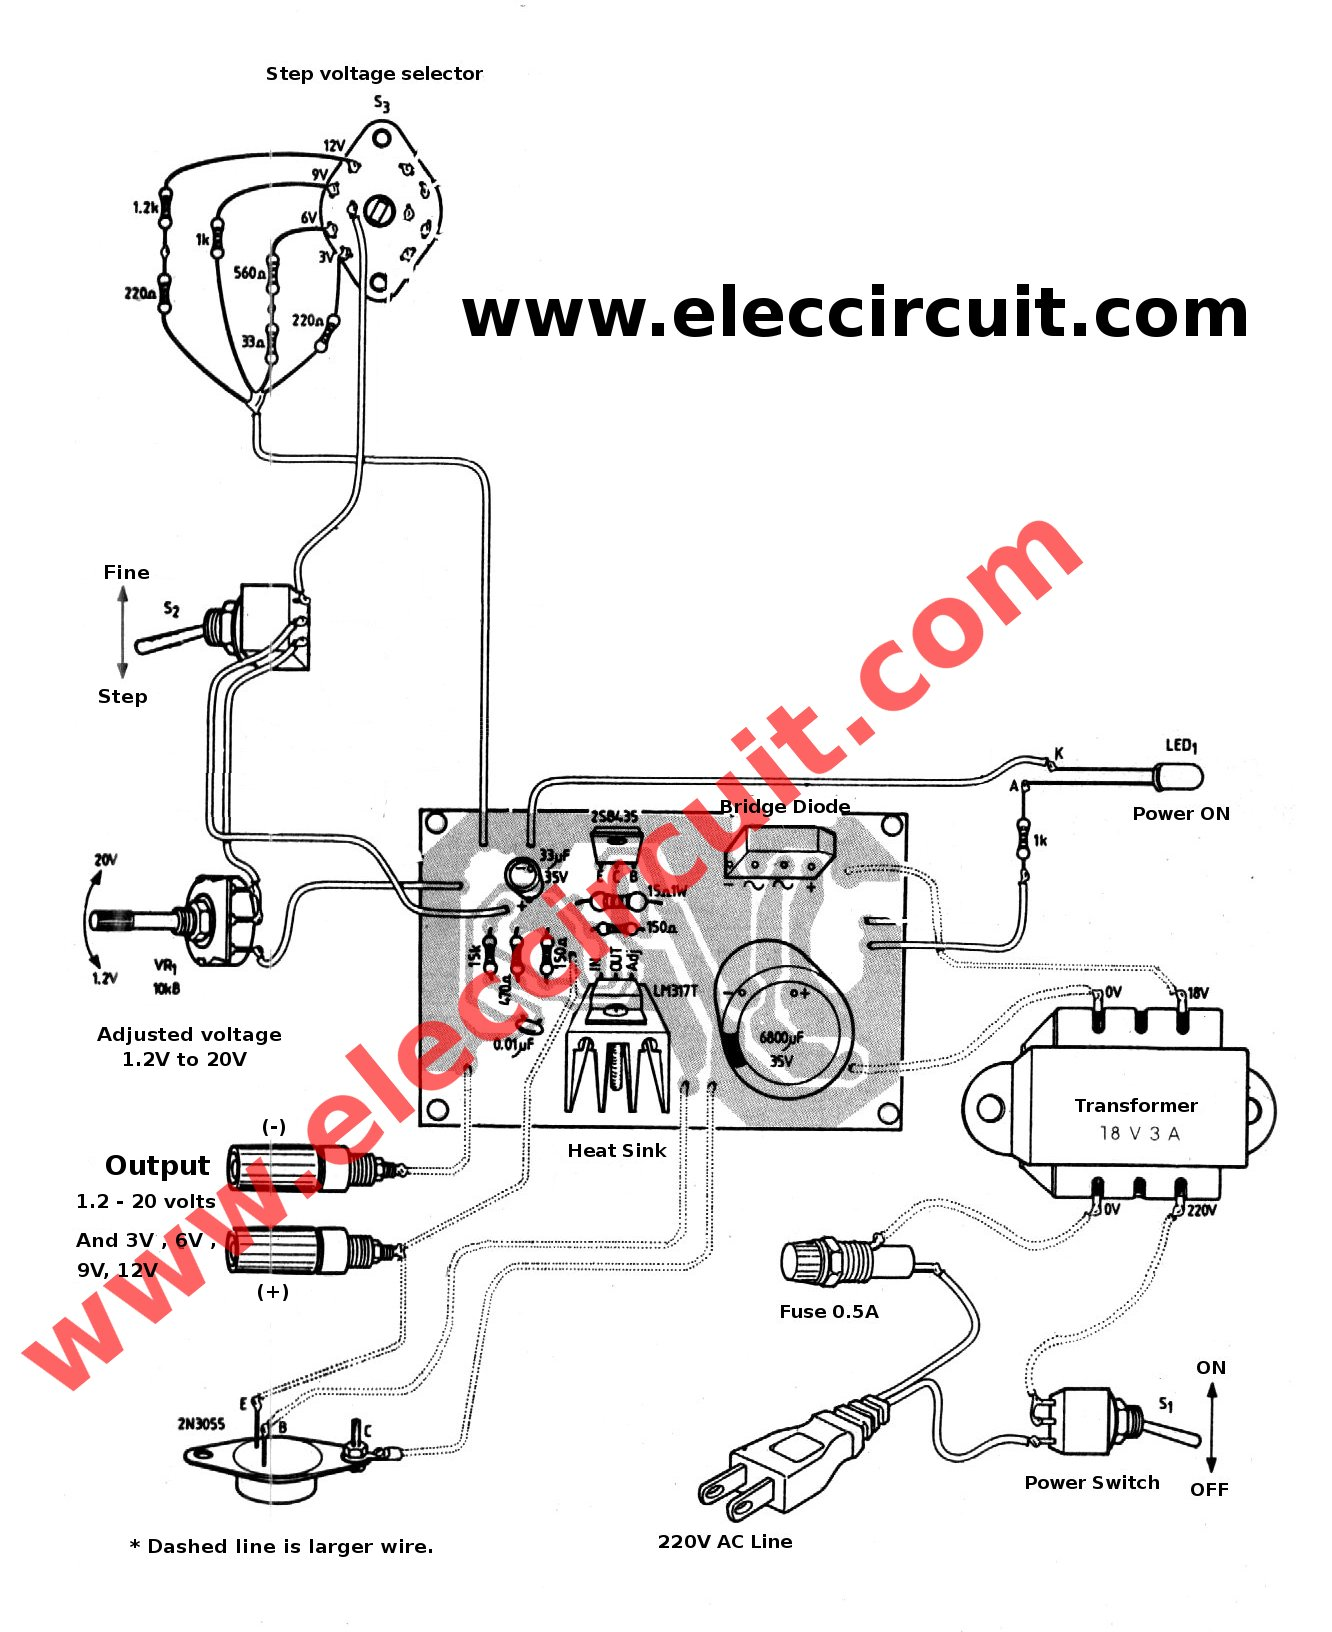 rotary power supply wiring diagram electrical work wiring diagram u2022 rh aglabs co